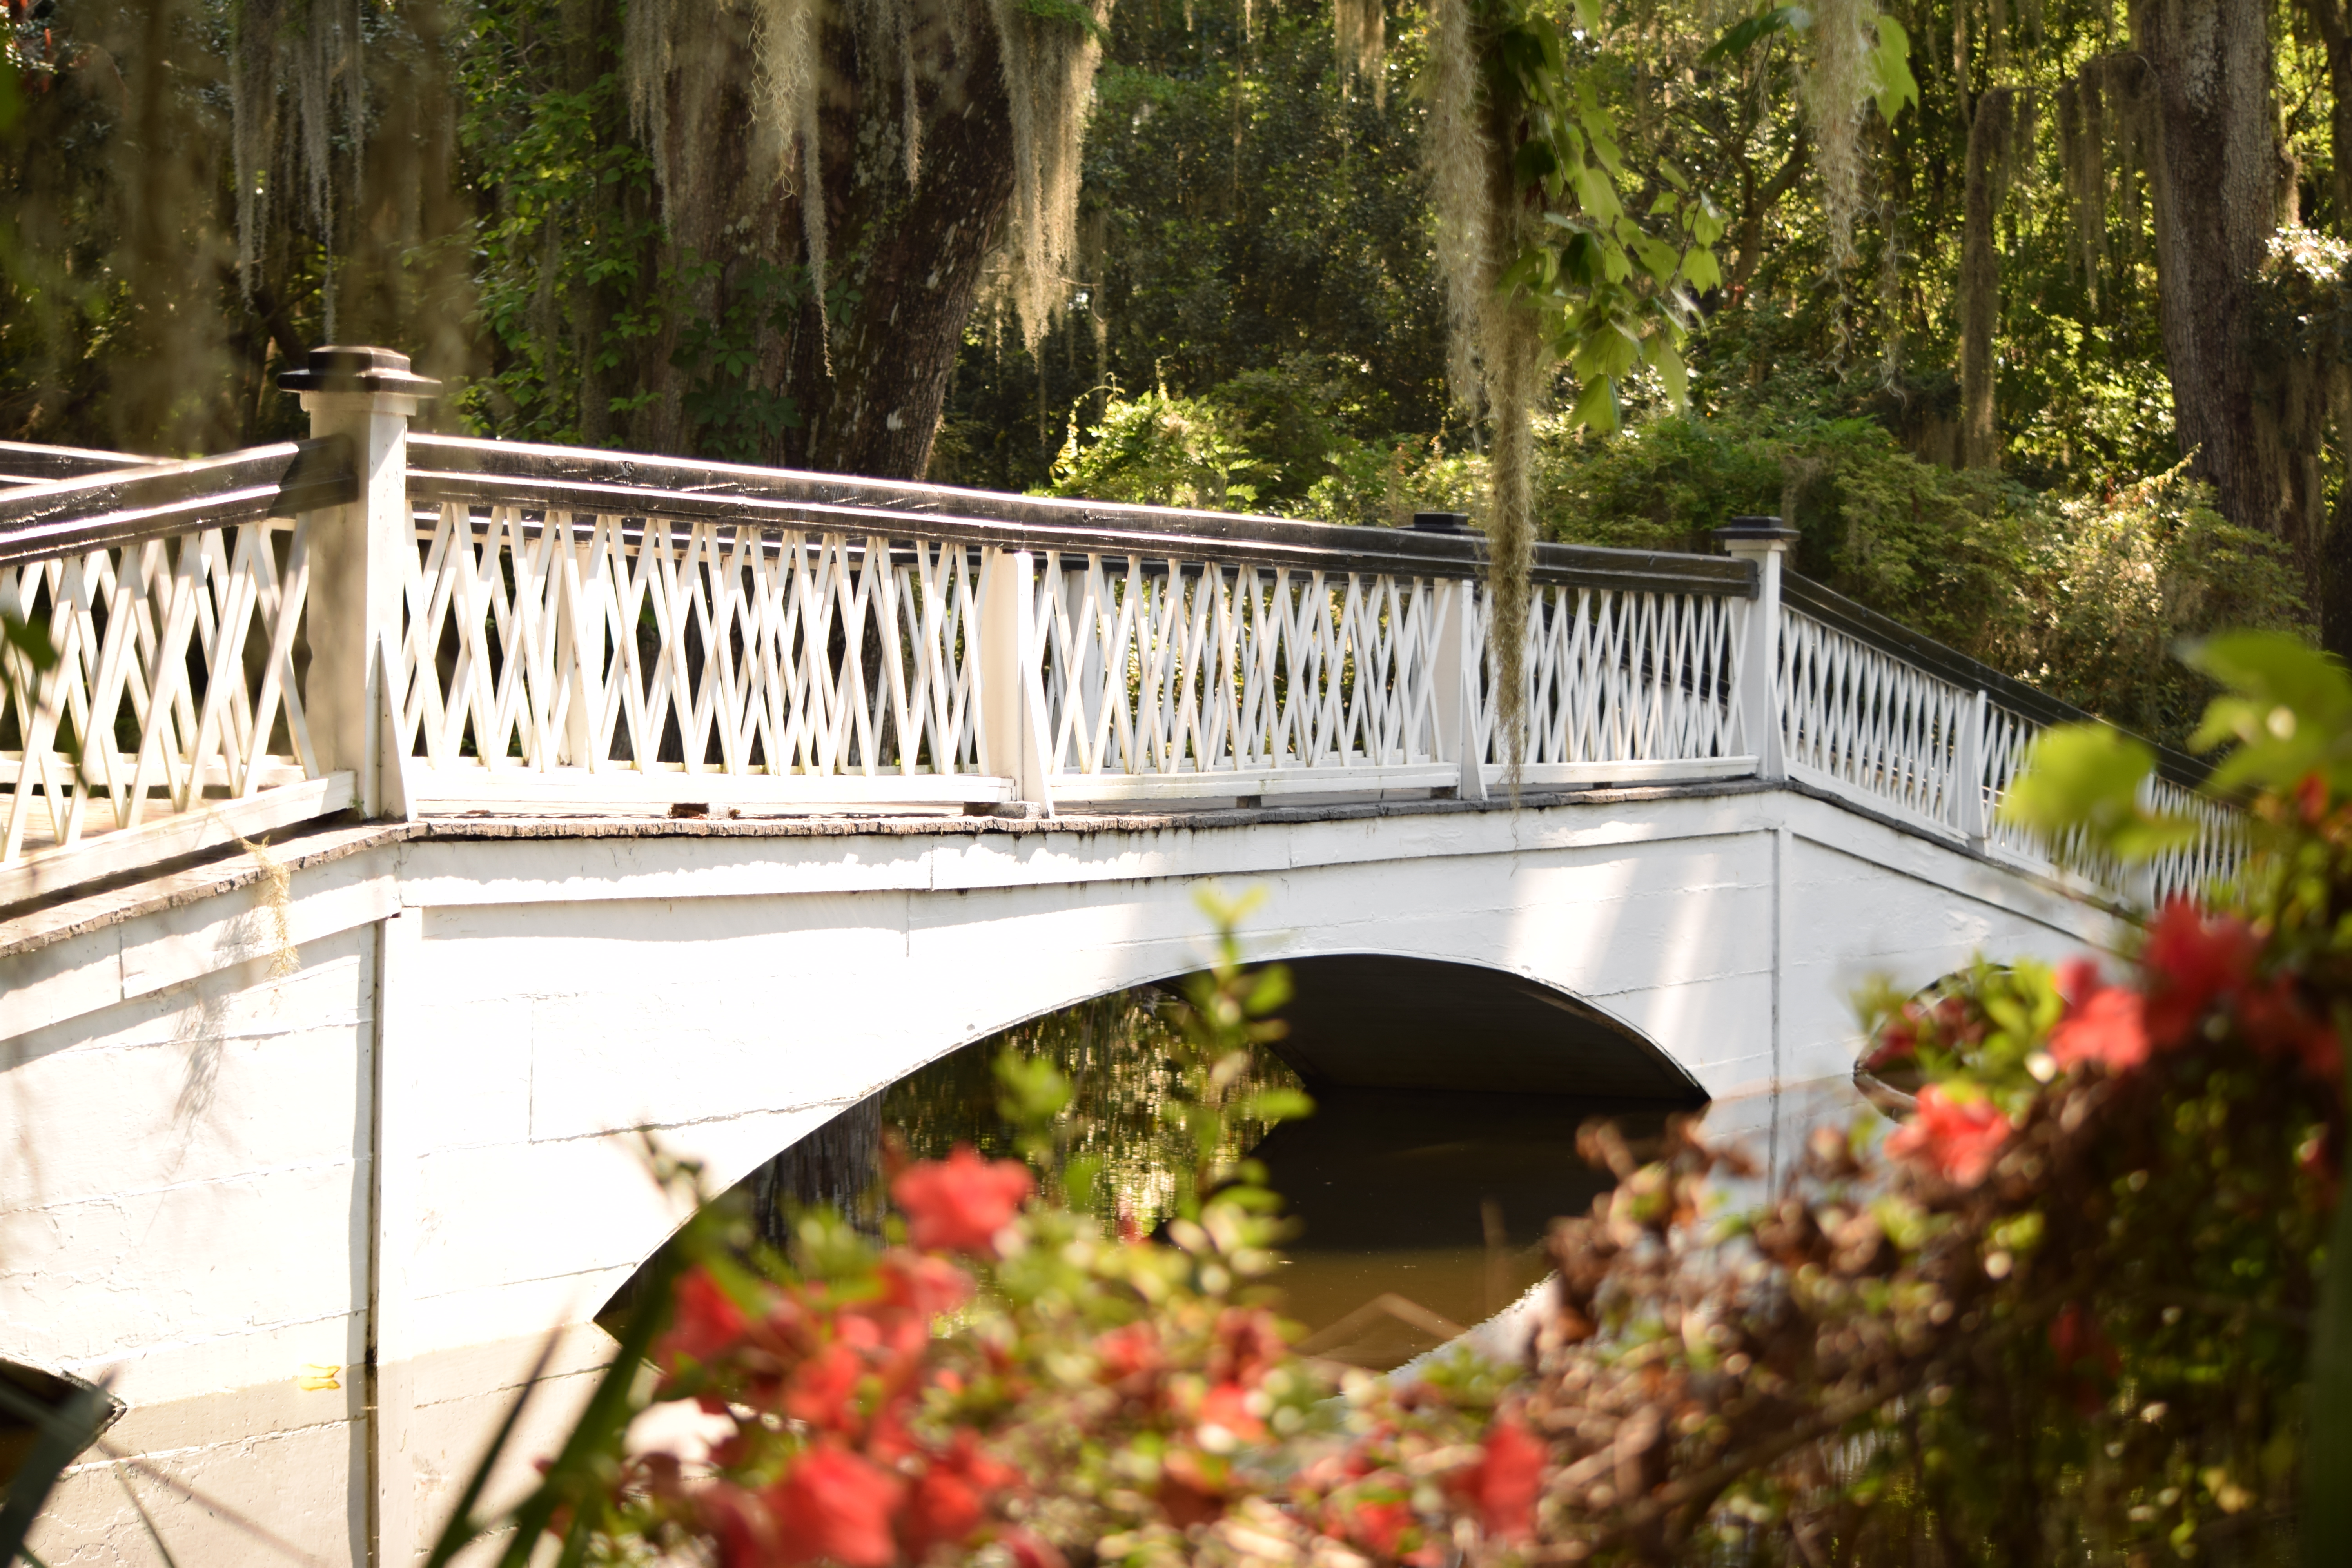 Travel Diary: A Day at Magnolia Plantation and Gardens